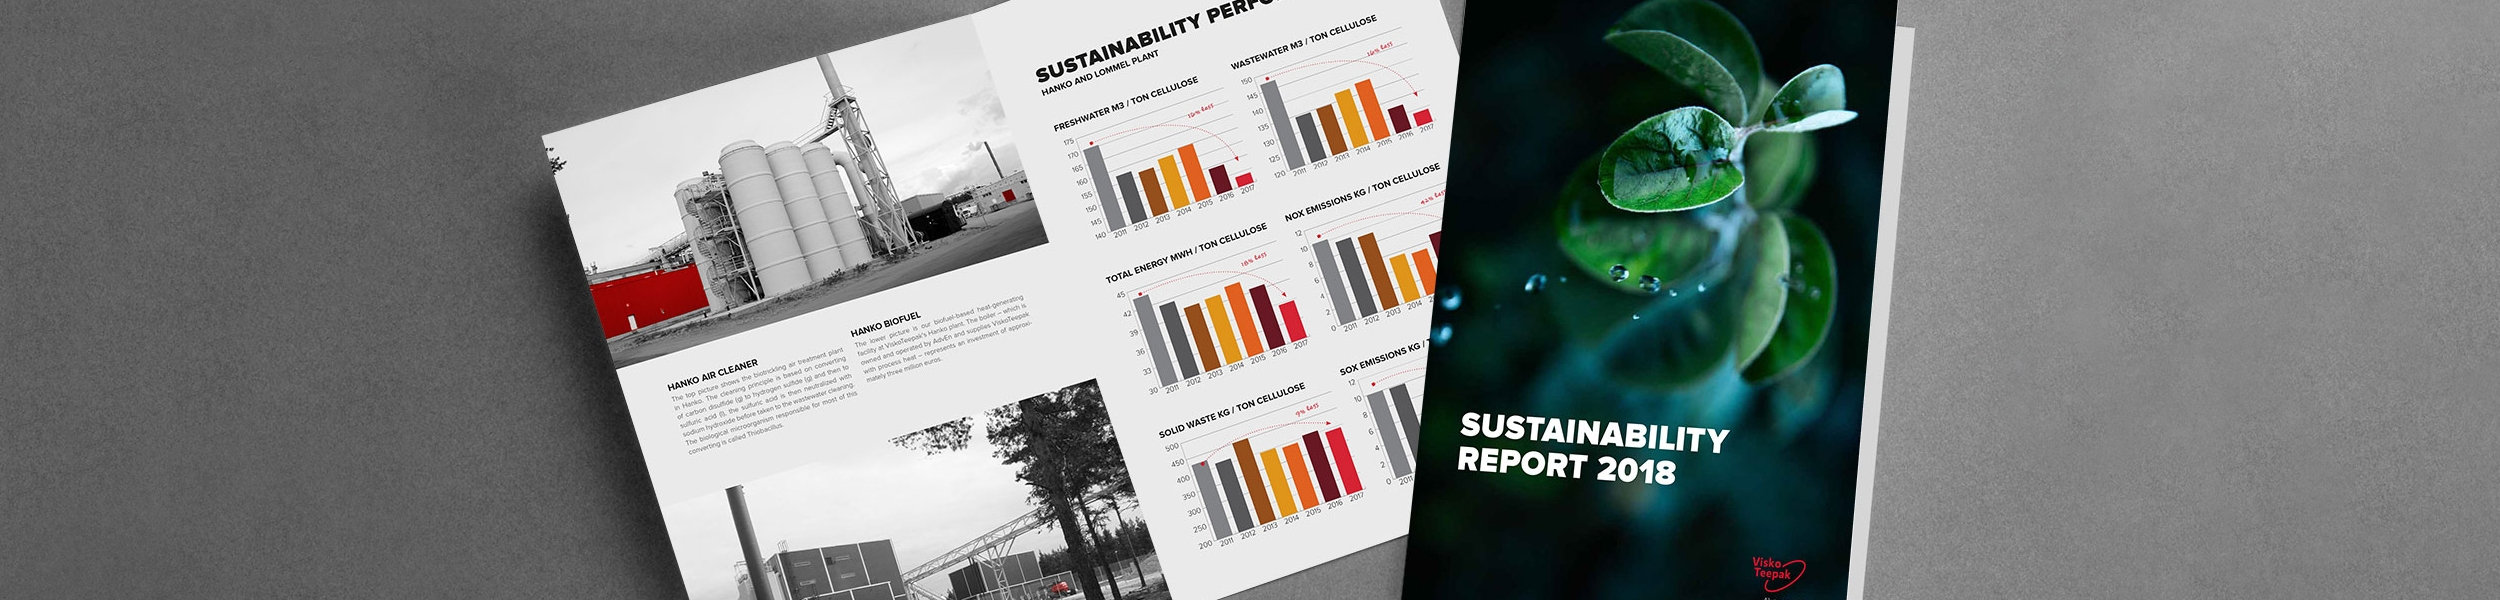 Sustainability report 2018 viskoteepak for Alberca water planet nuevo laredo